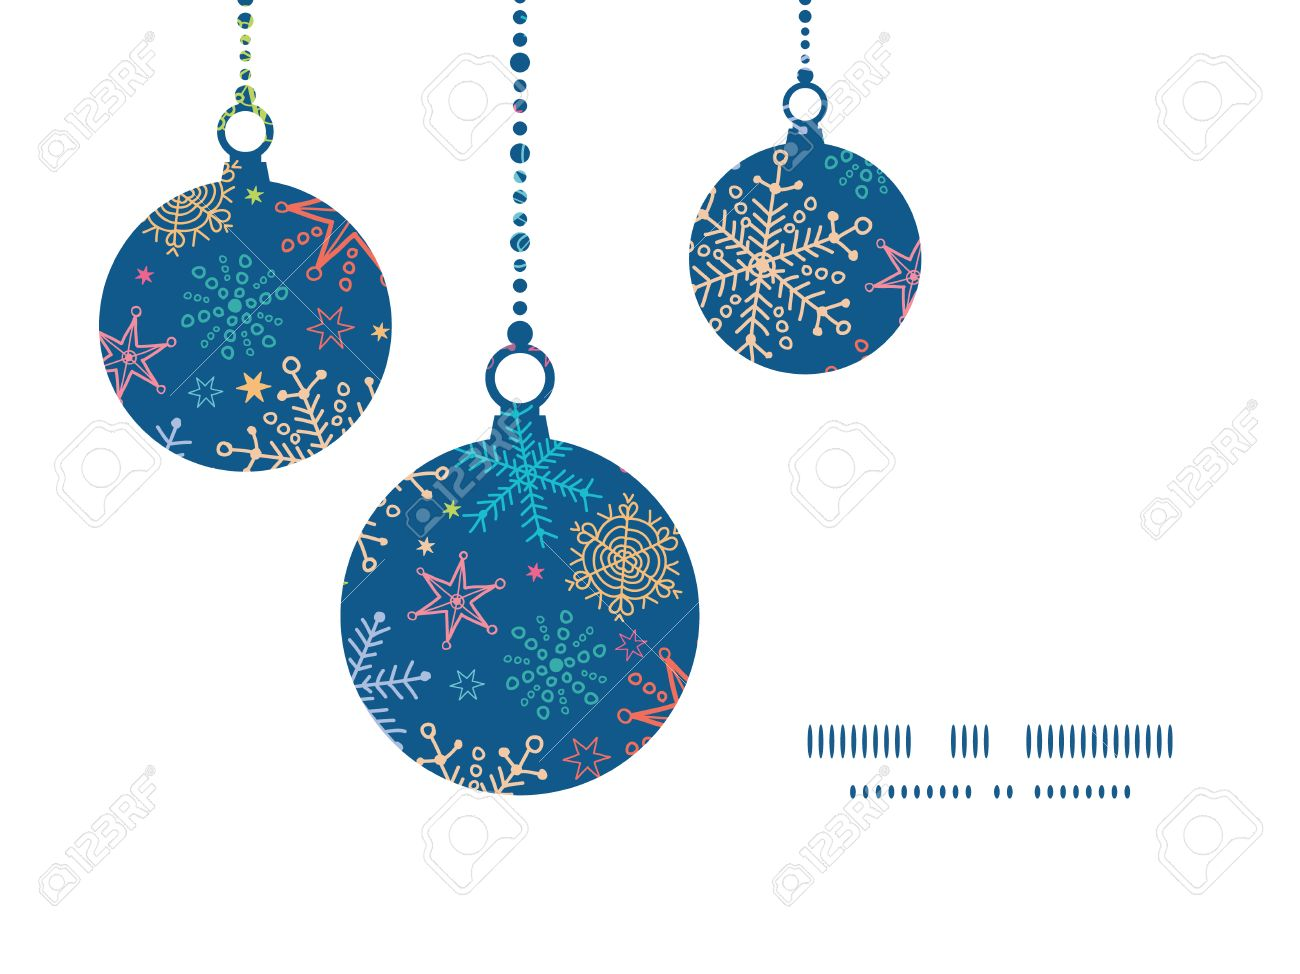 Christmas ornament frame - Vector Vector Colorful Doodle Snowflakes Christmas Ornaments Silhouettes Pattern Frame Card Template